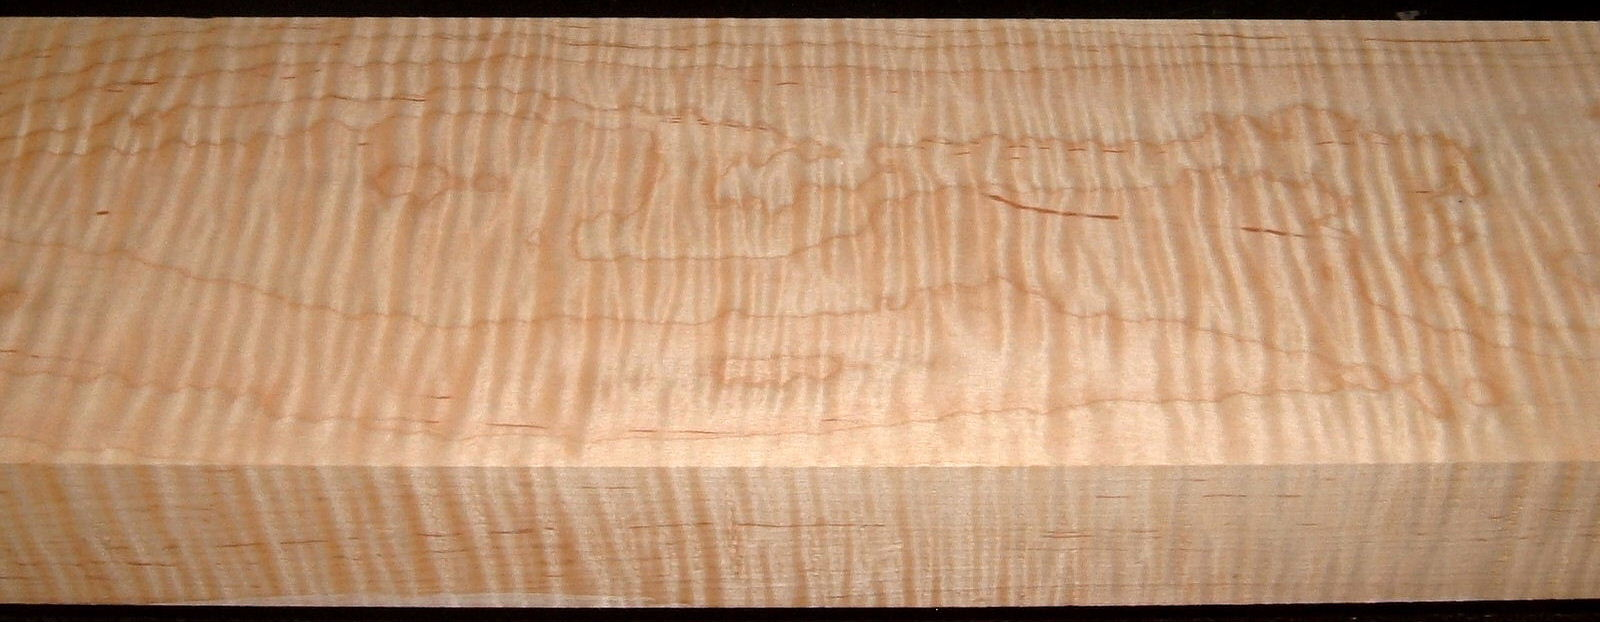 M2006-454, 1-7/8x5-3/4x41, 8/4 Curly Tiger Maple